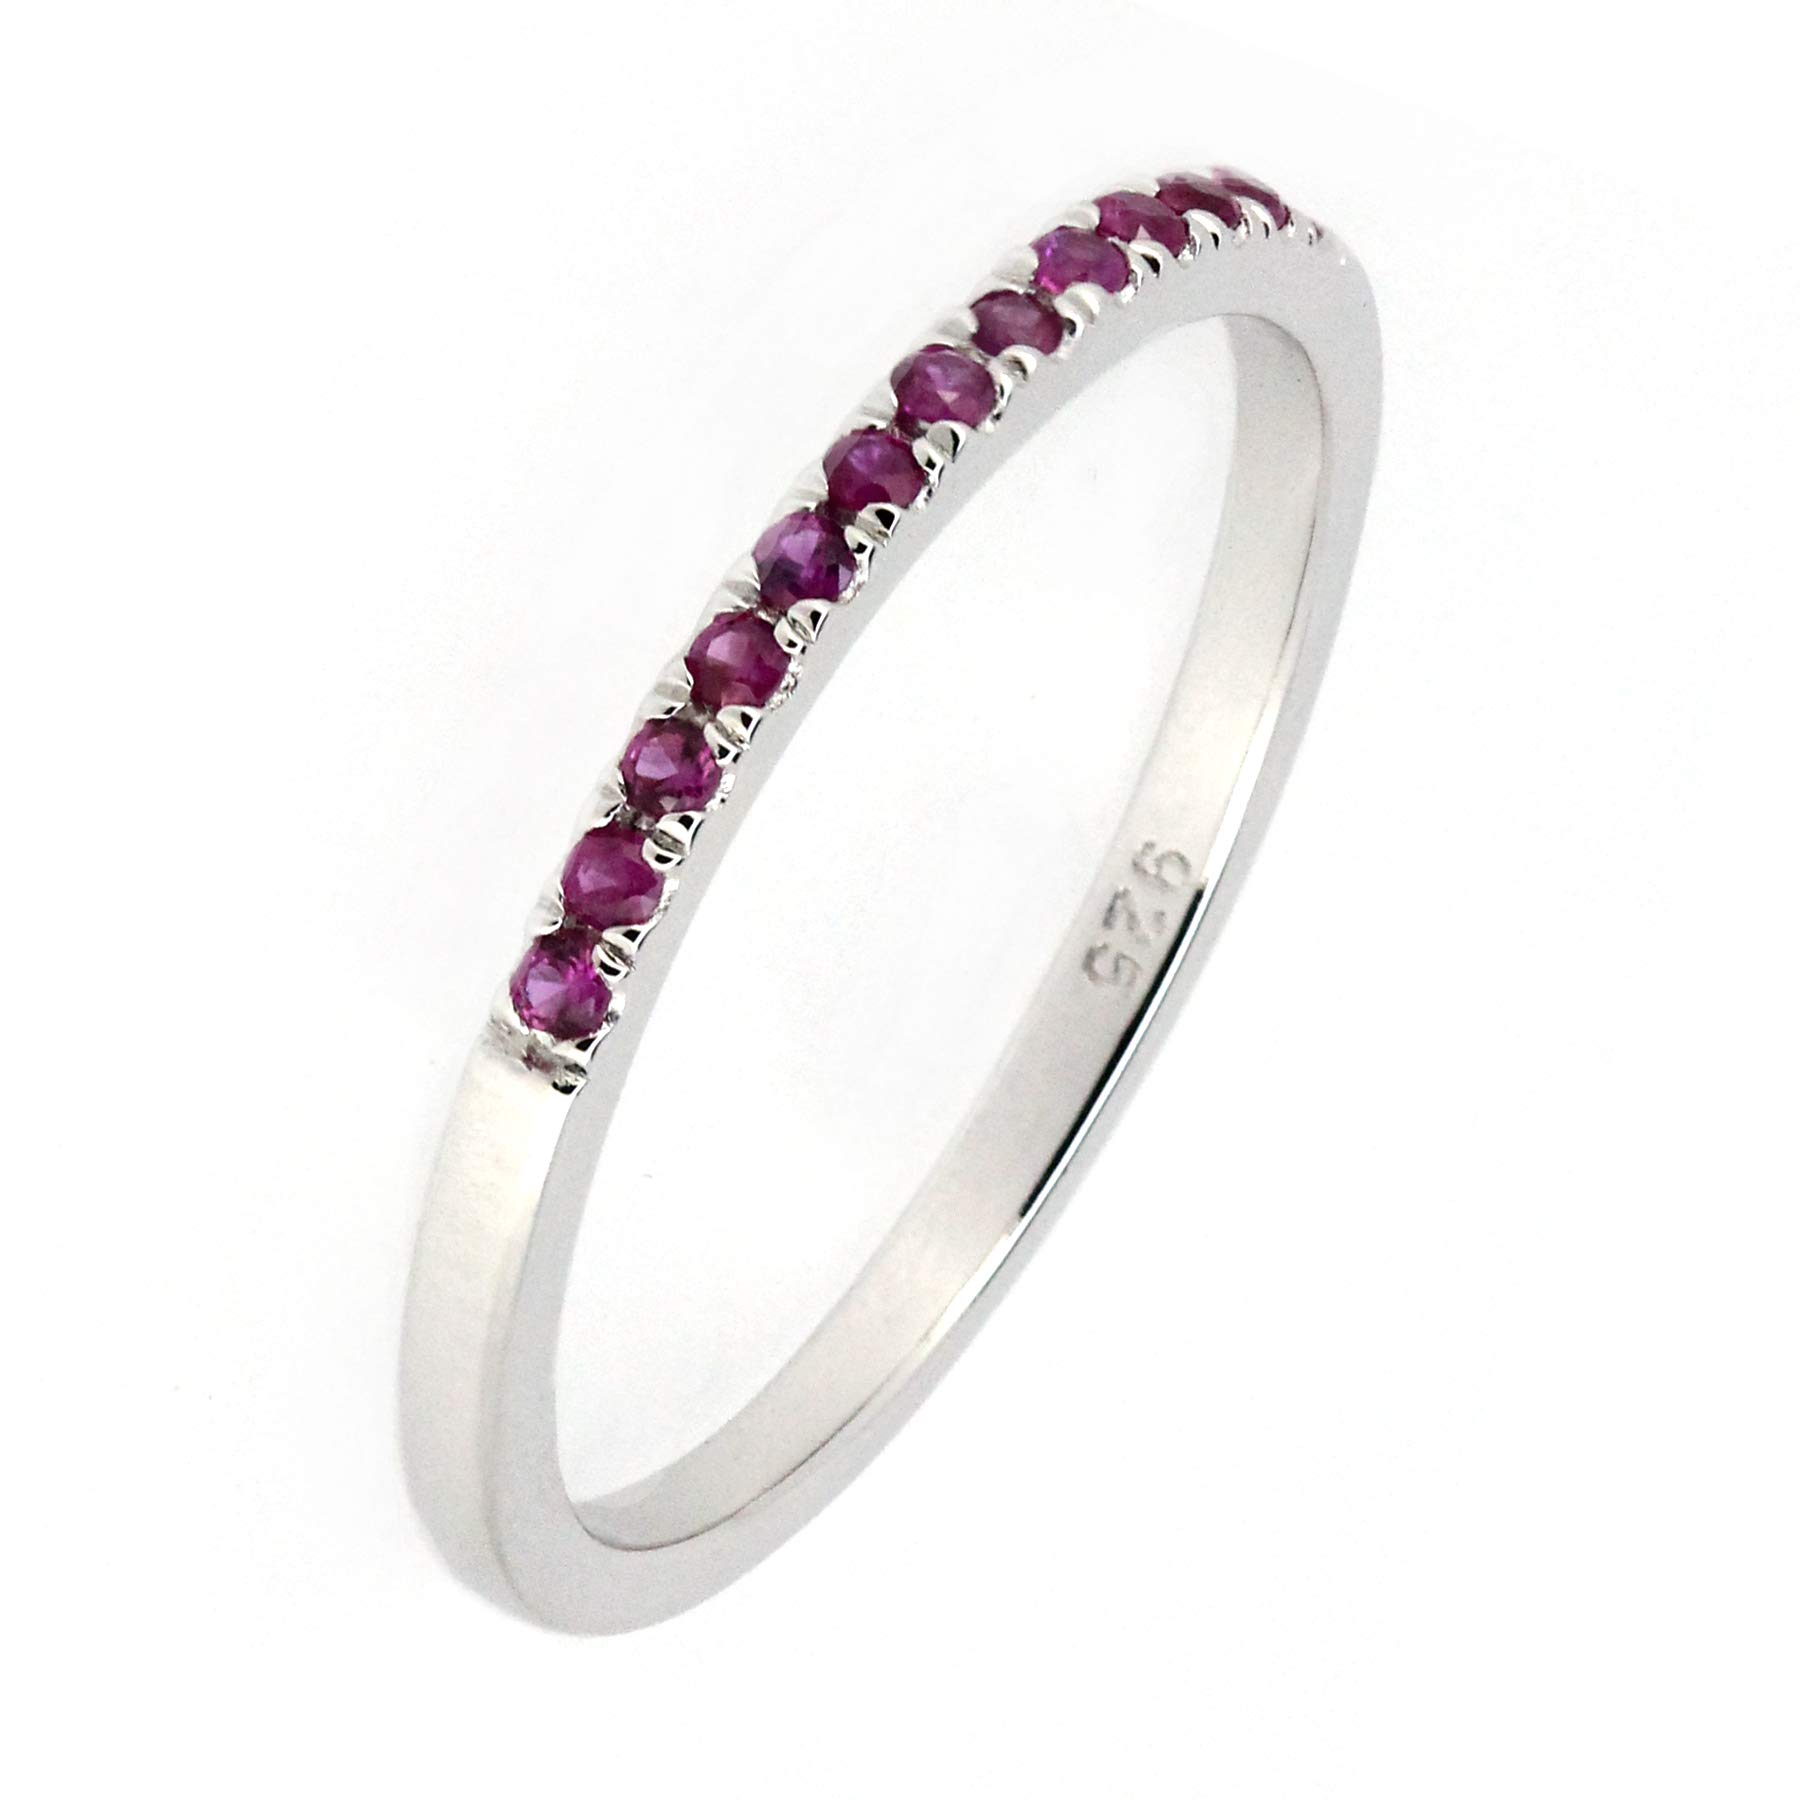 Sterling Silver Genuine Natural Ruby Half Eternity Band Ring by ByLove Jewelry